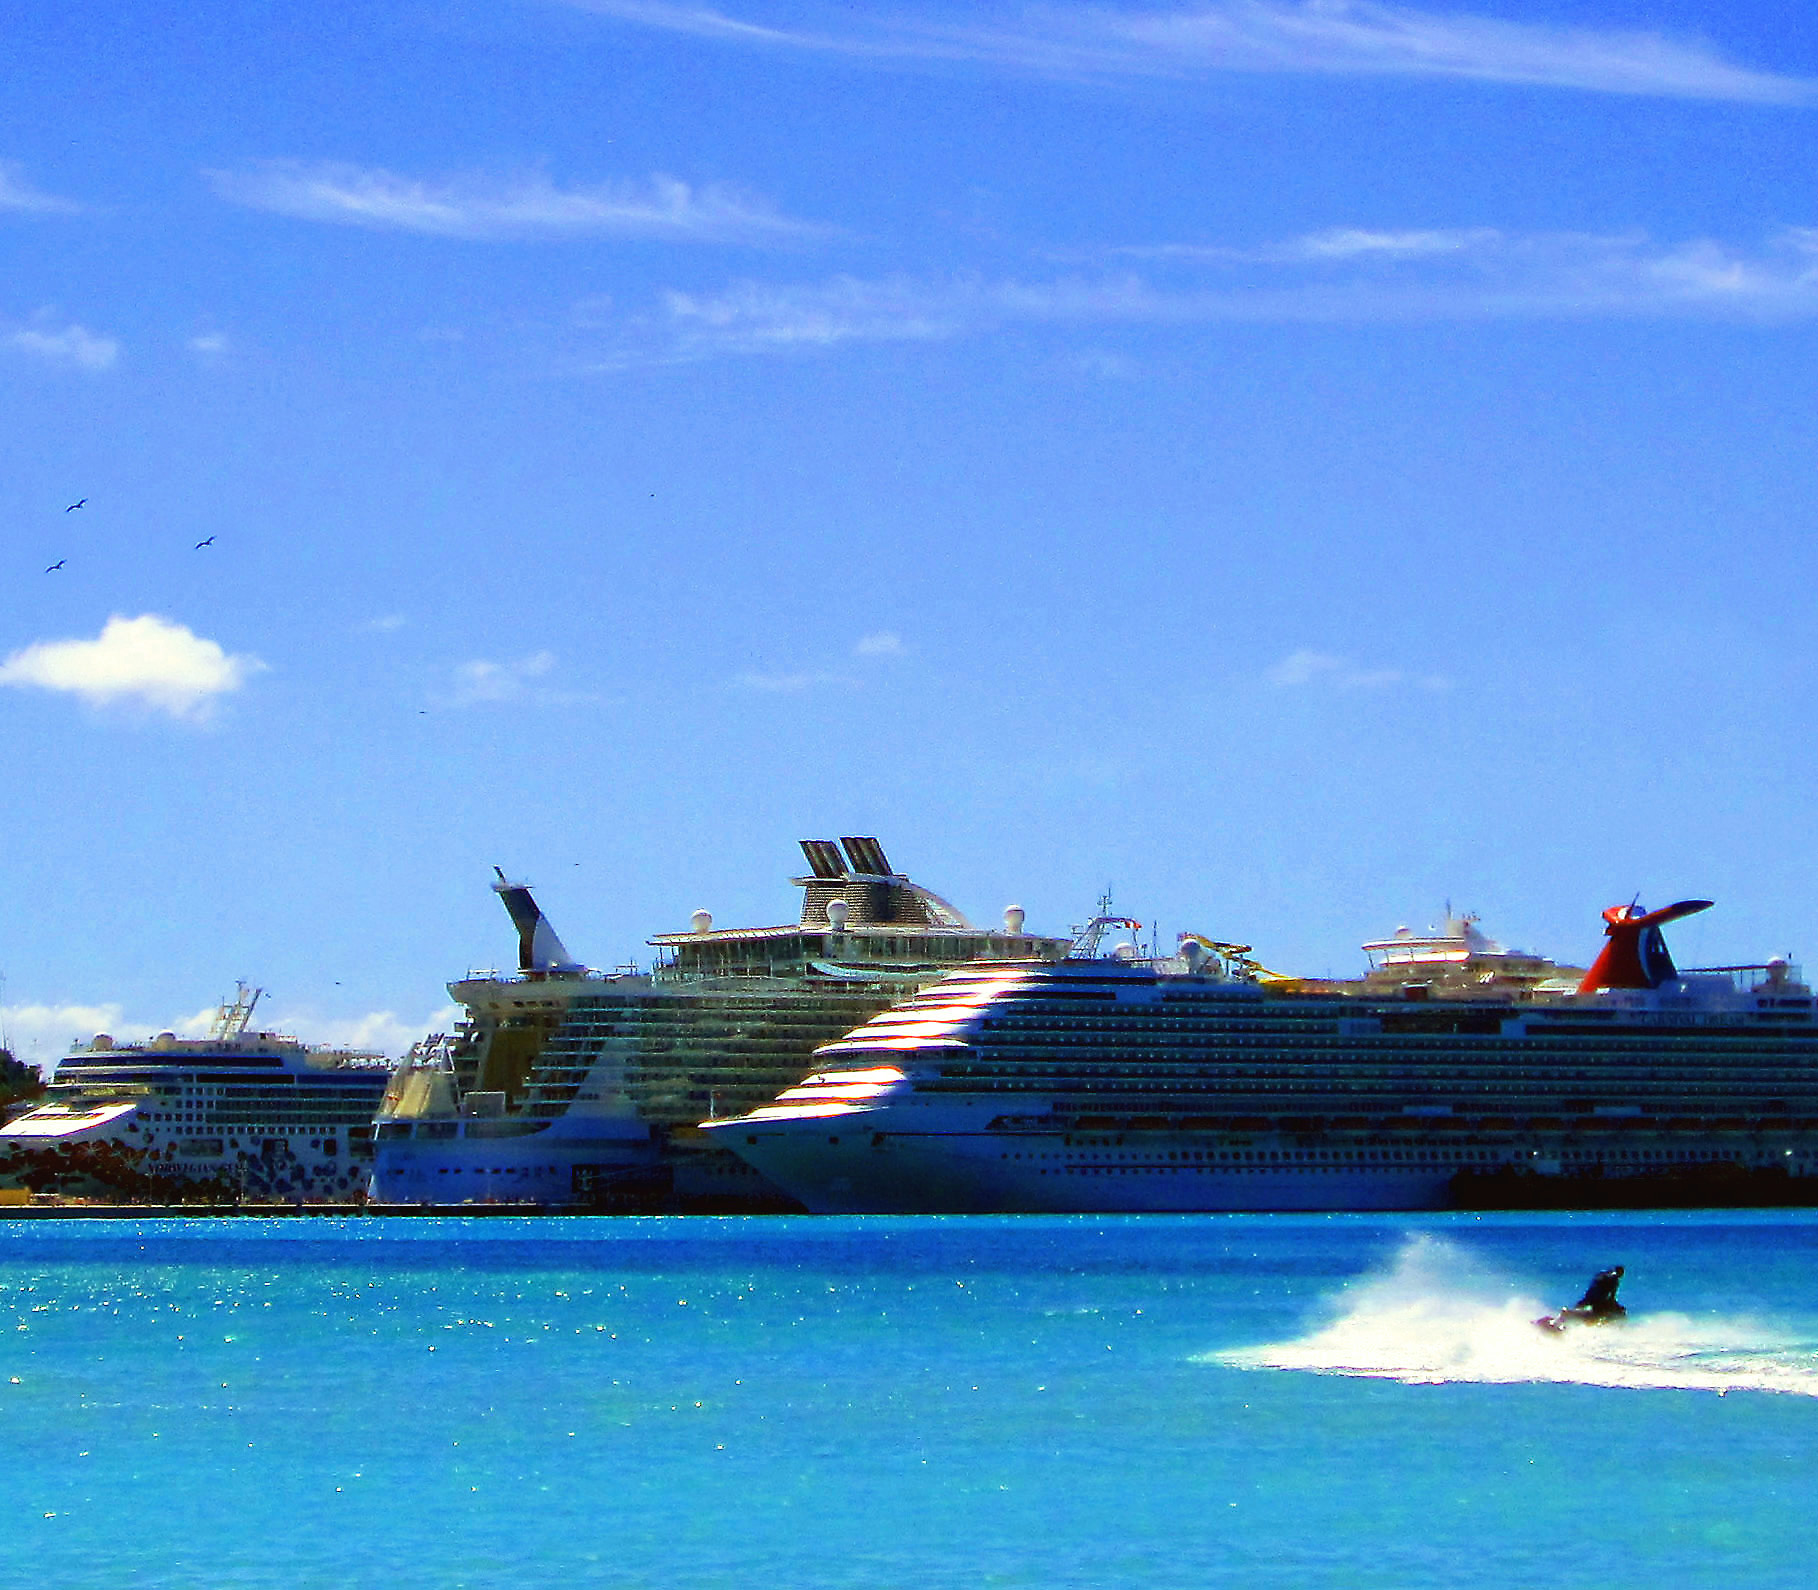 Jet Skiing On Great Bay In St Maarten Near Docked Cruise Ships